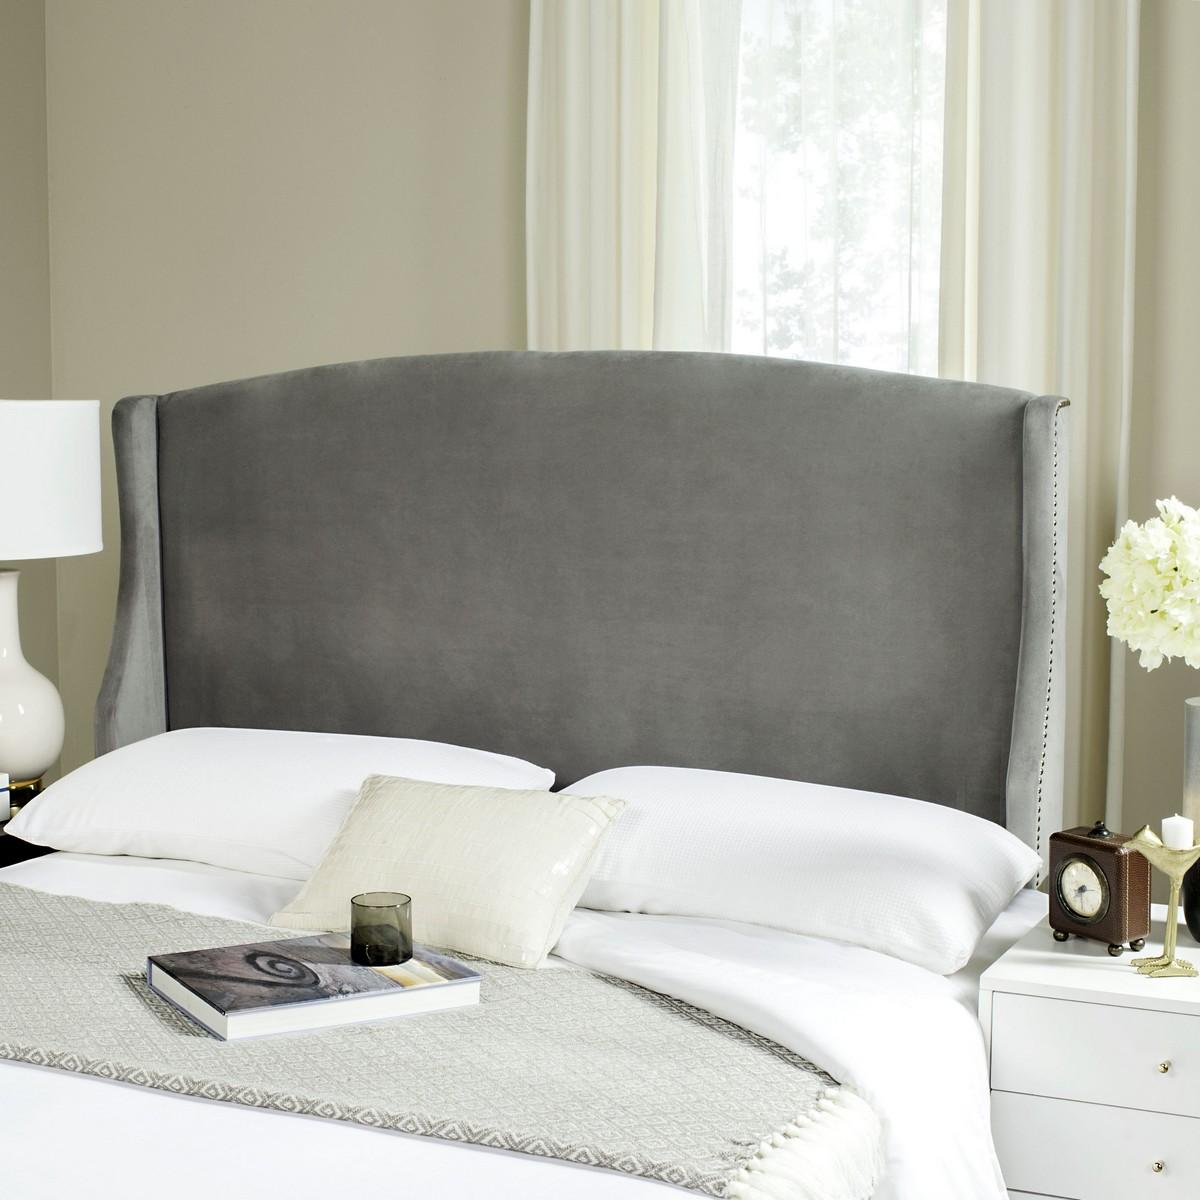 Headboard with Tufted design